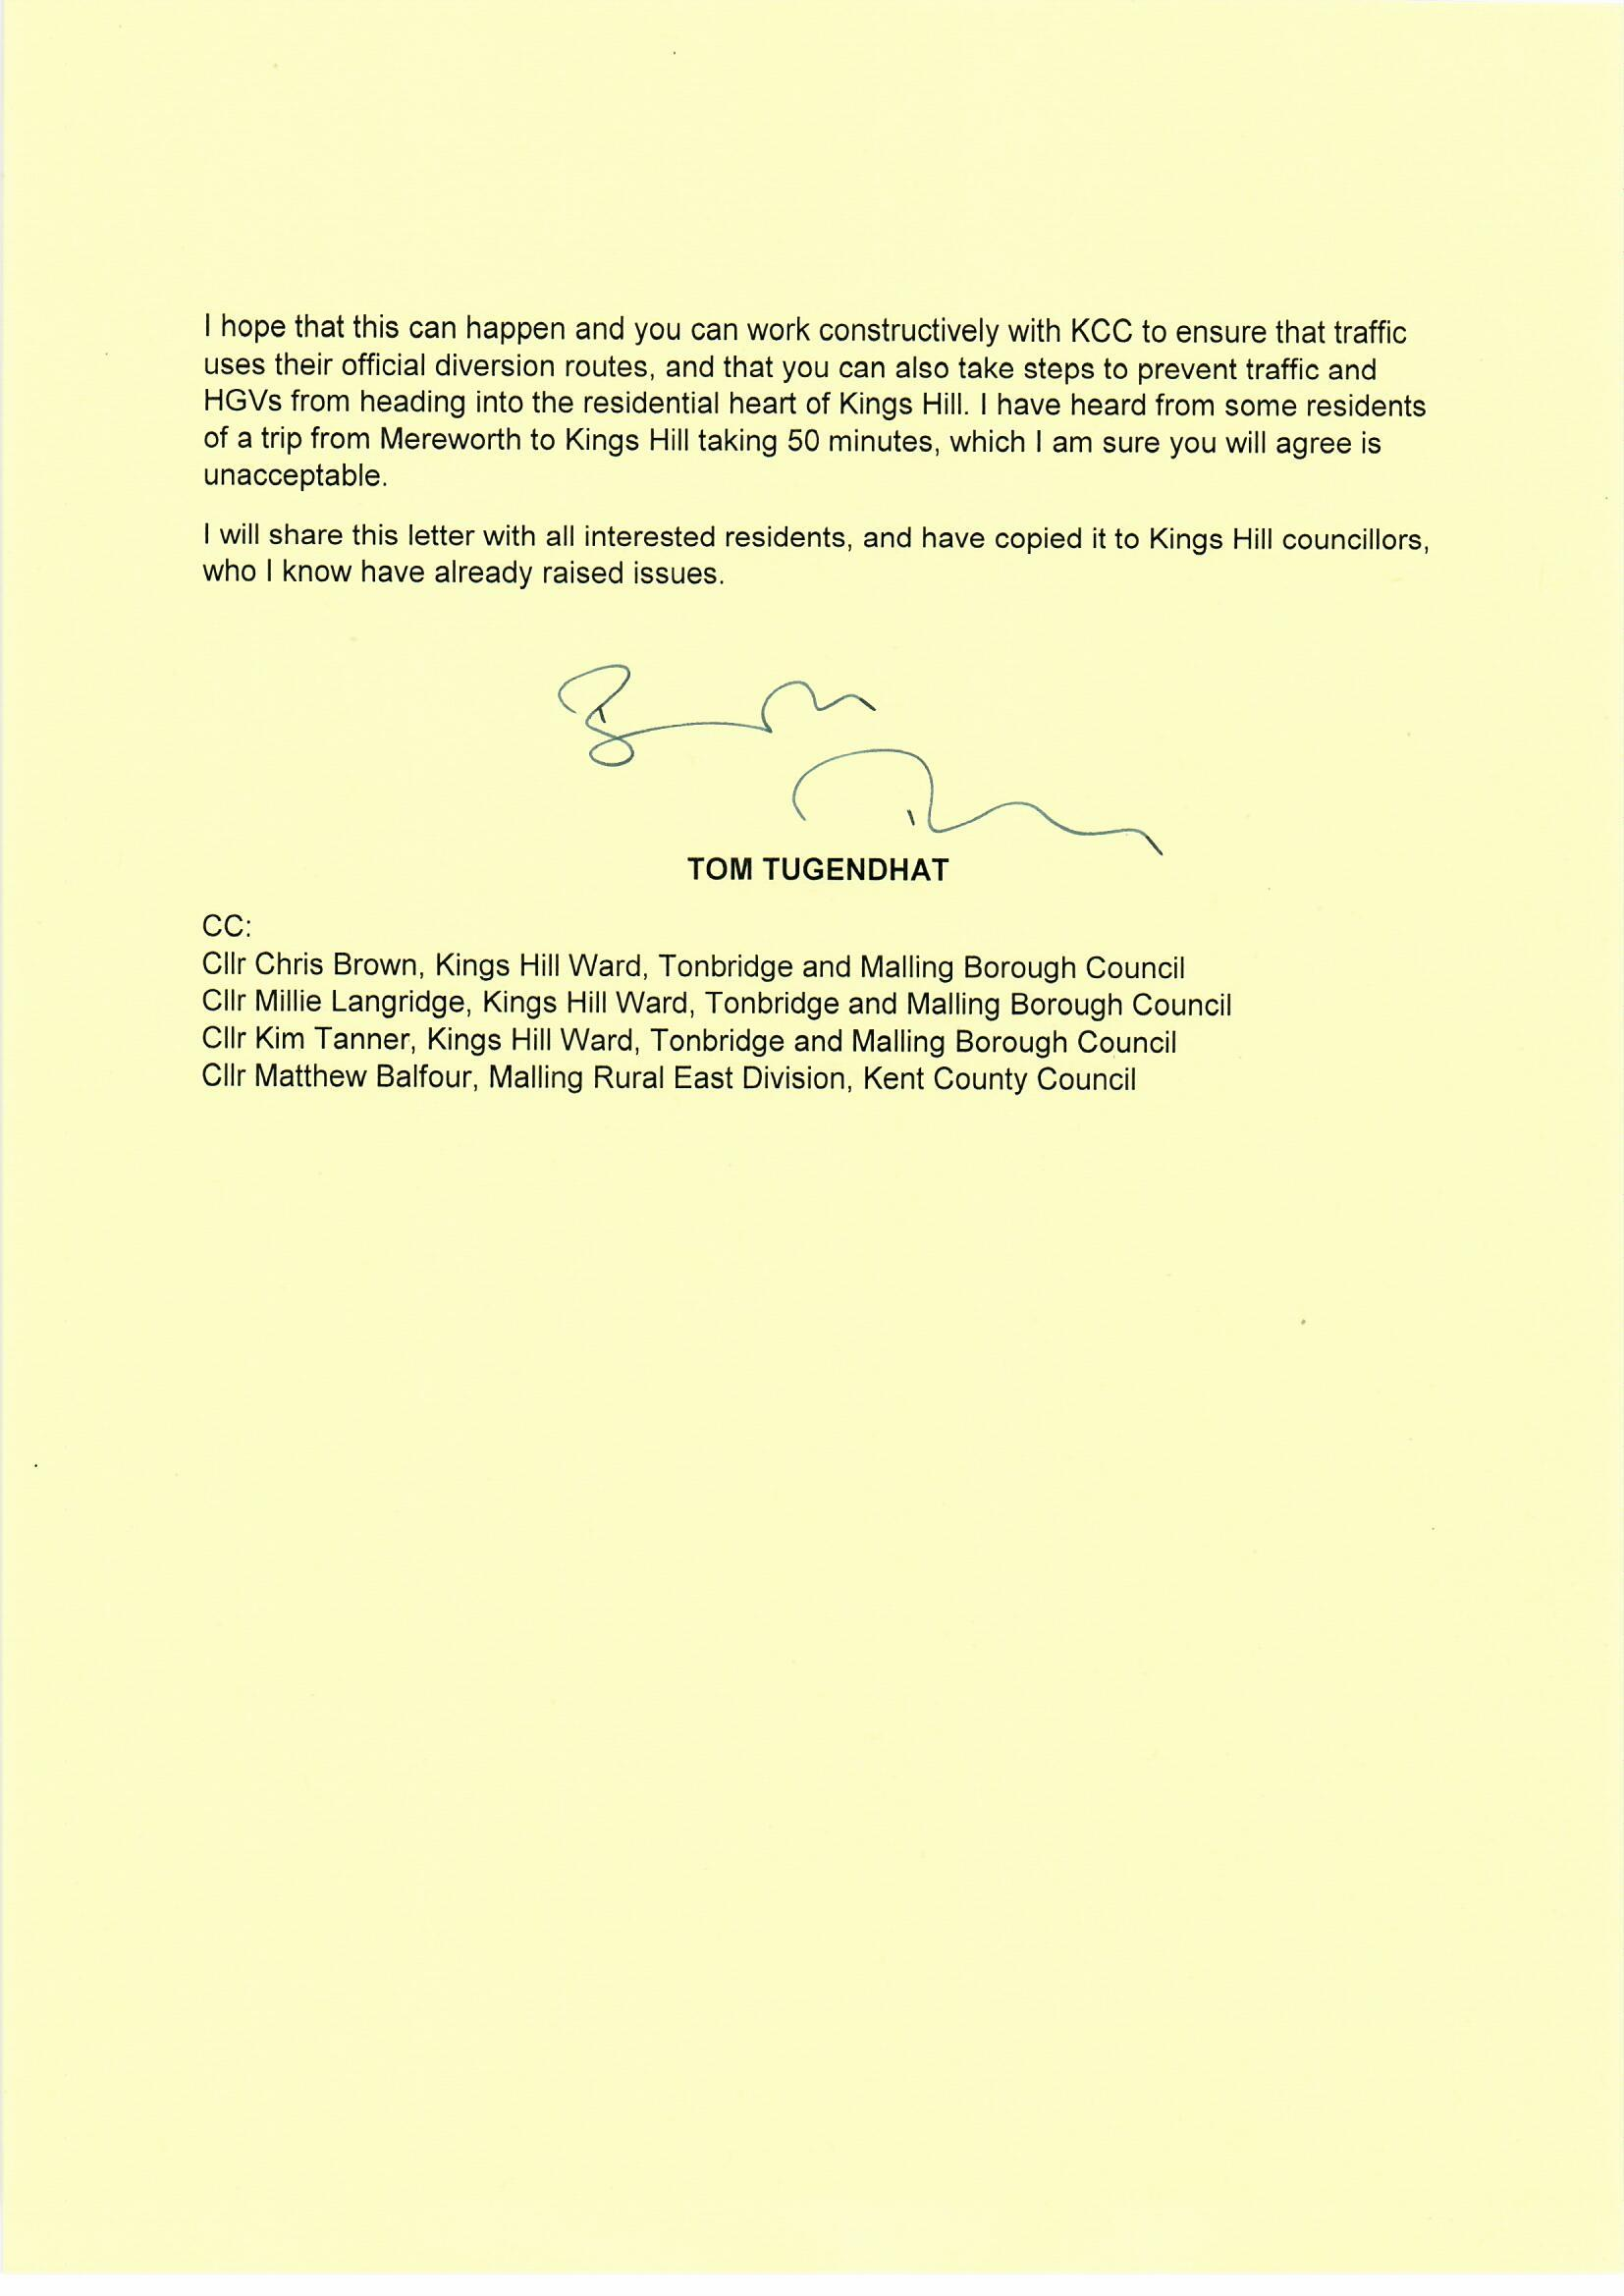 20190731 - Tom Tugendhat to Liberty Property Trust, A228 closure0002.jpg